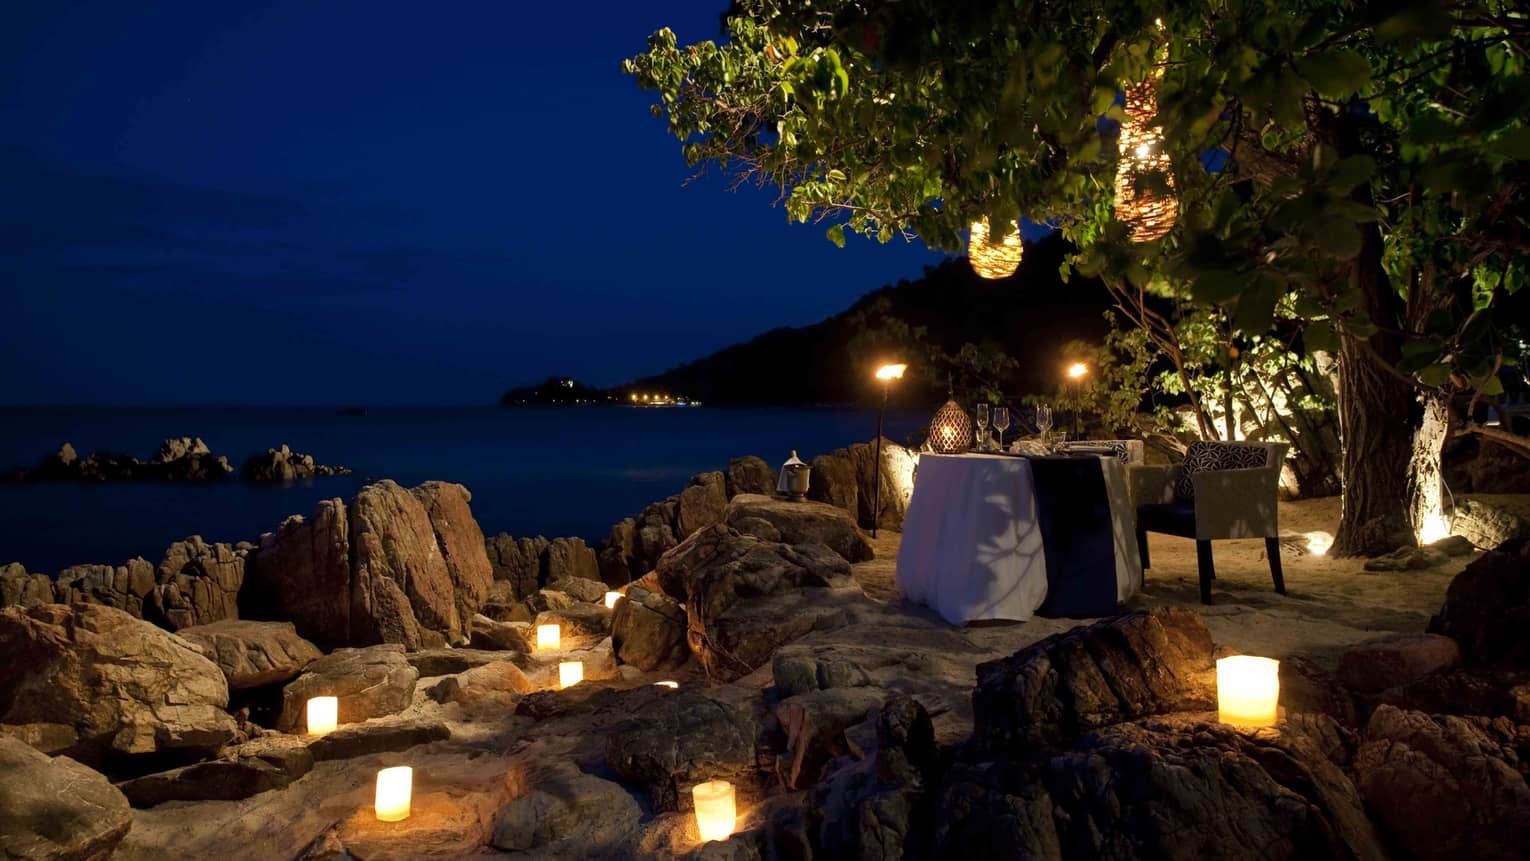 Candles glow on rocks near private dining table on beach at night